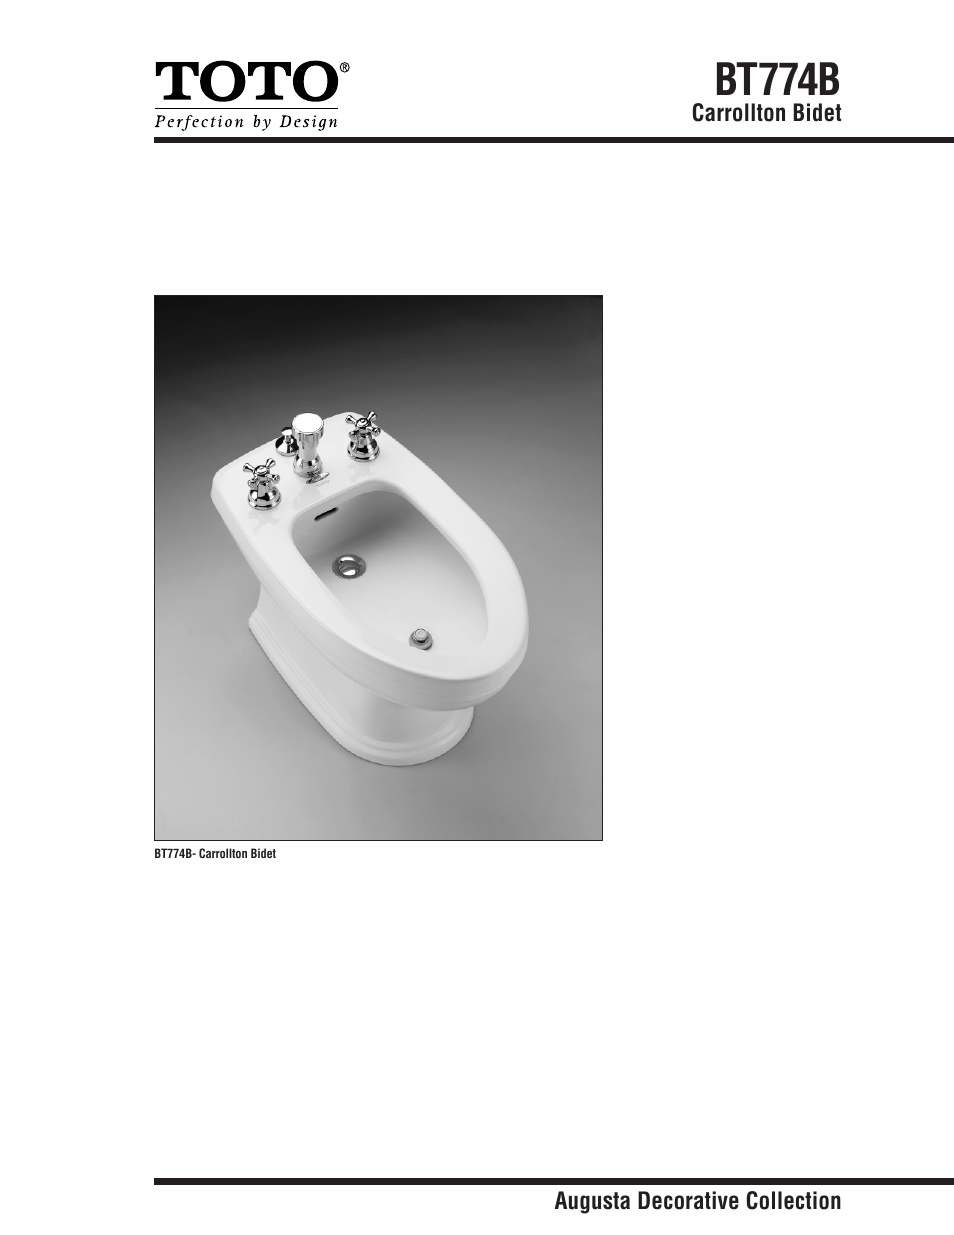 Factory Direct Hardware Toto BT774B Carrollton User Manual | 2 pages